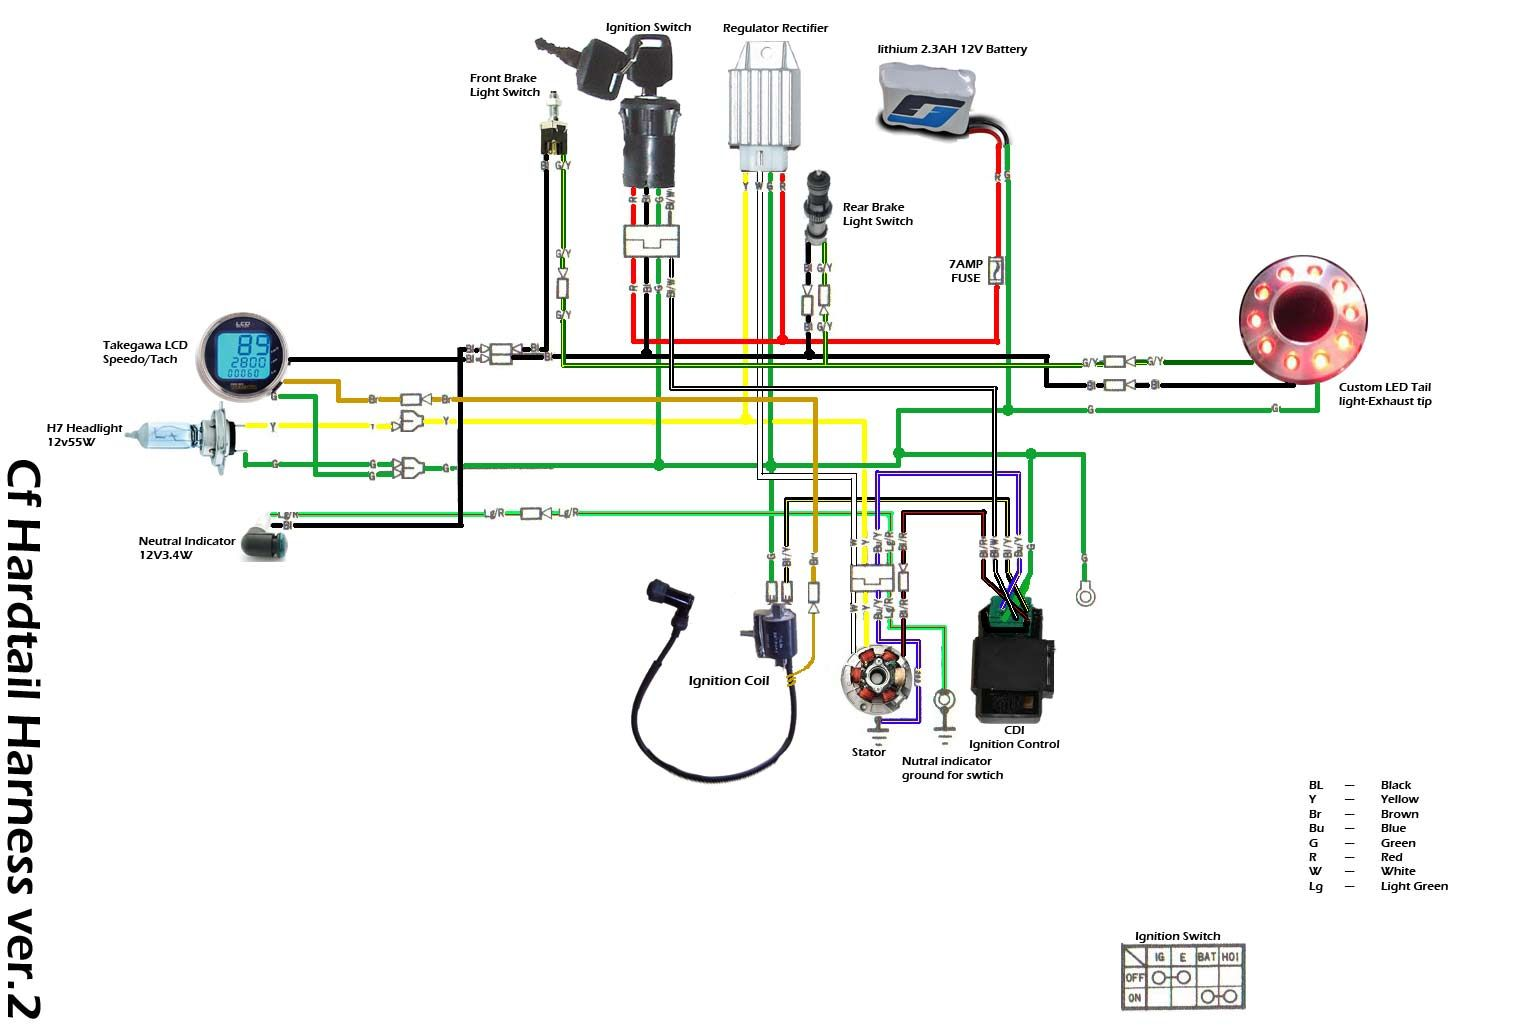 medium resolution of wrg 2891 110 wiring diagrambuggy wiring schematic as well as vdo diesel tachometer wiring diagram